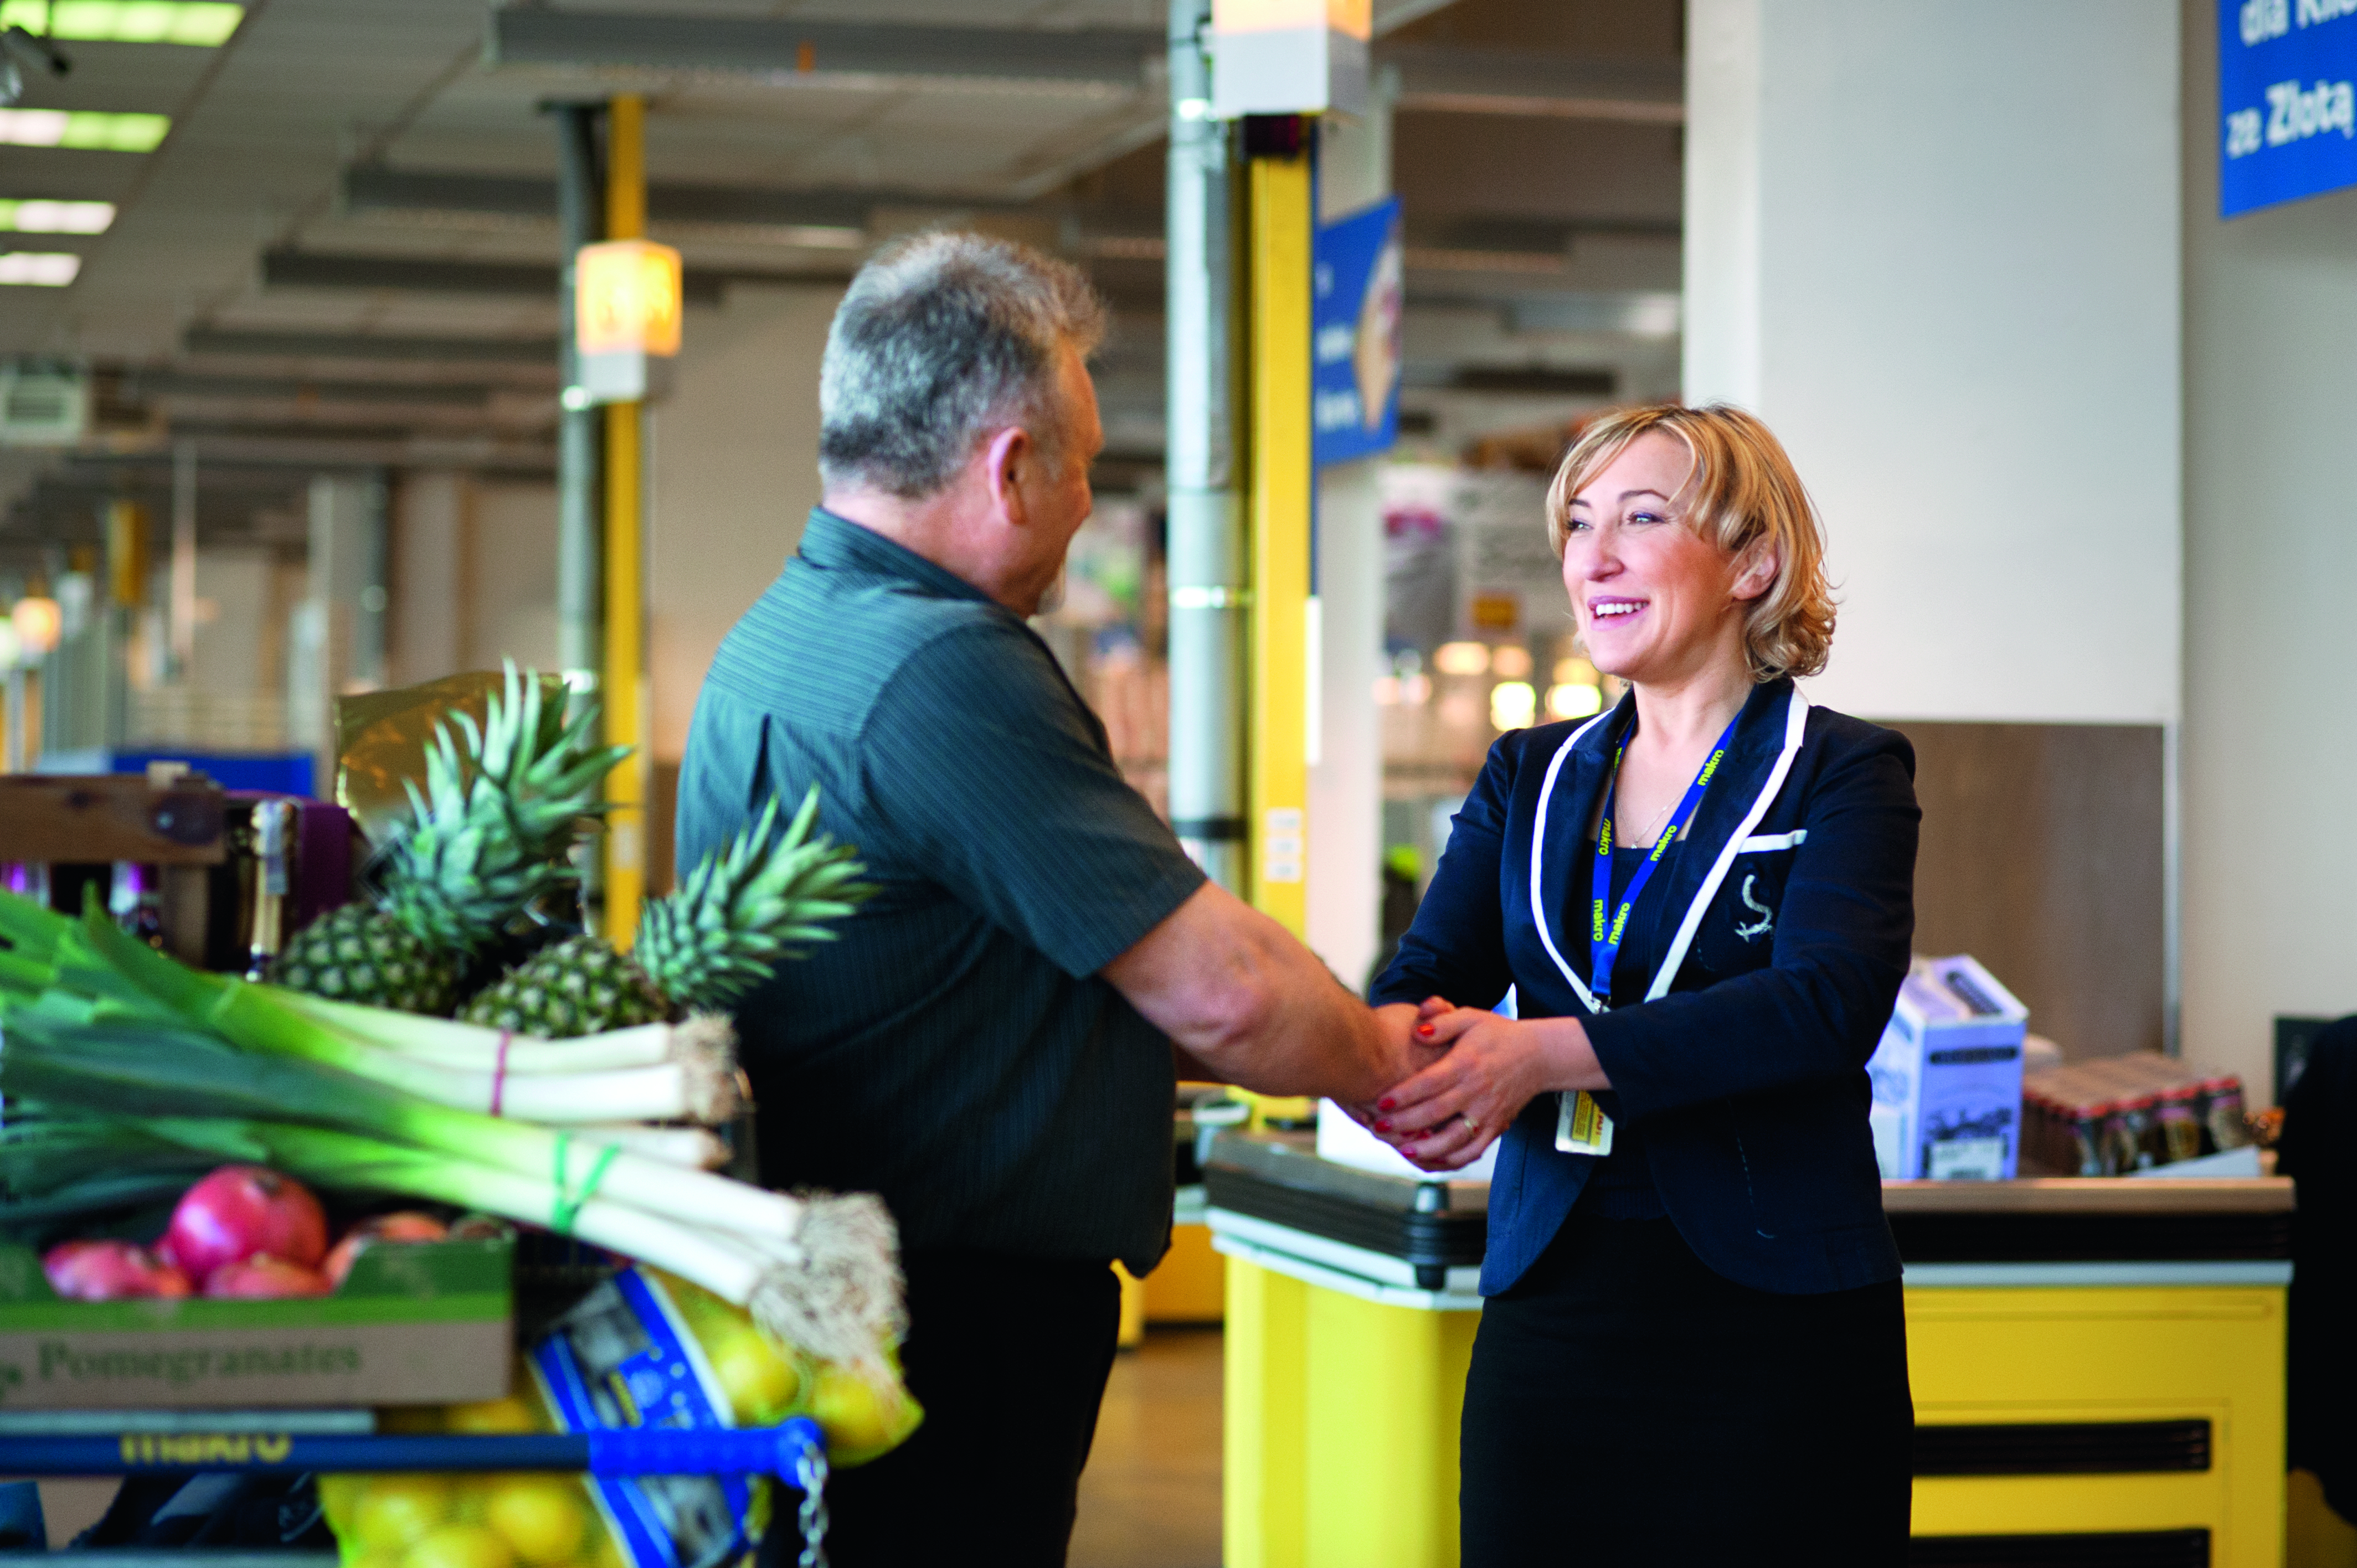 Store Manager shaking Hands with Customer